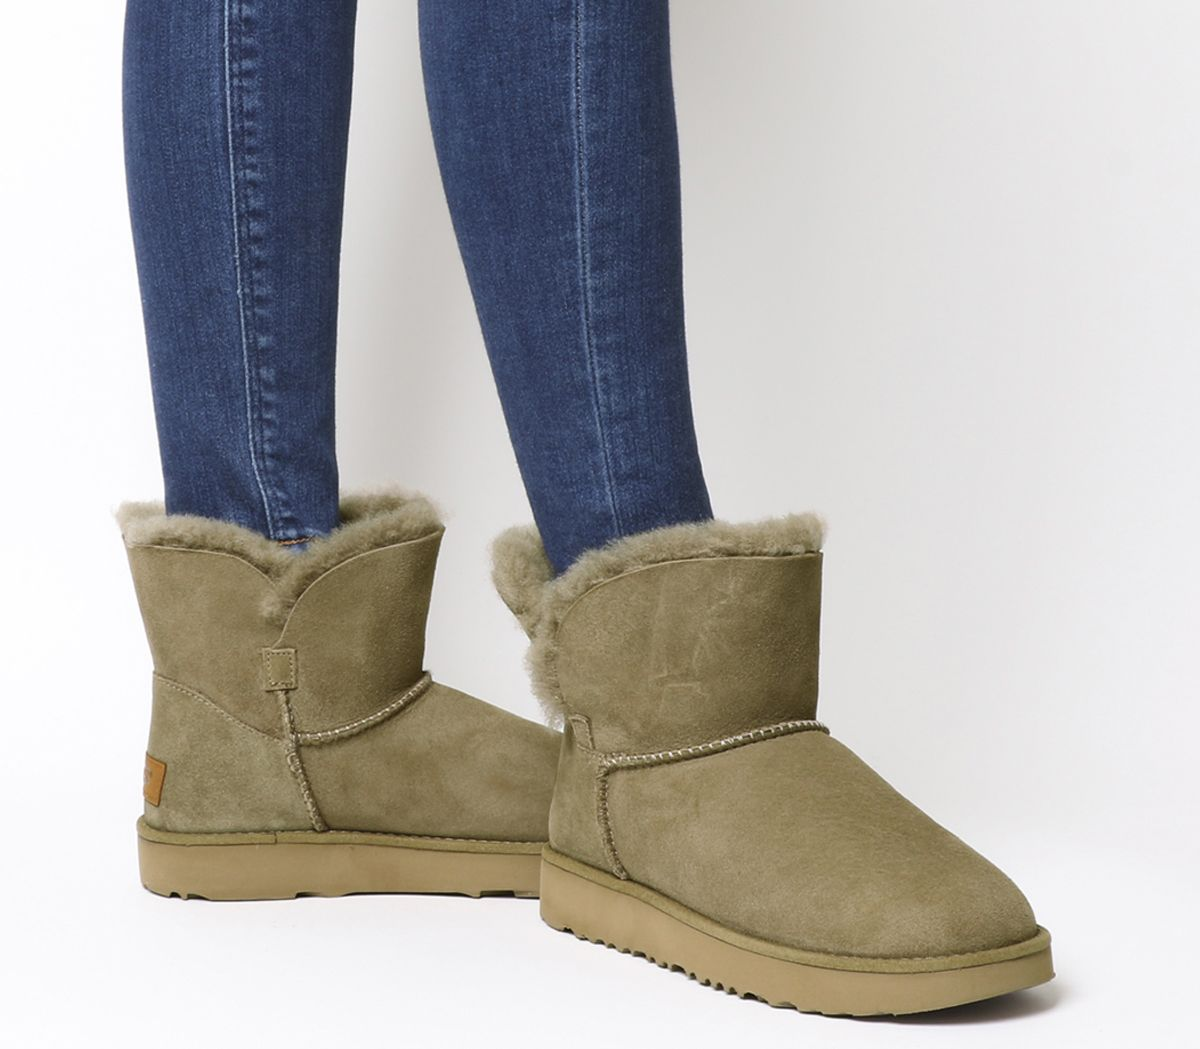 acaf6ff0b71072 UGG Classic Cuff Mini Boots Antilope - Ankle Boots